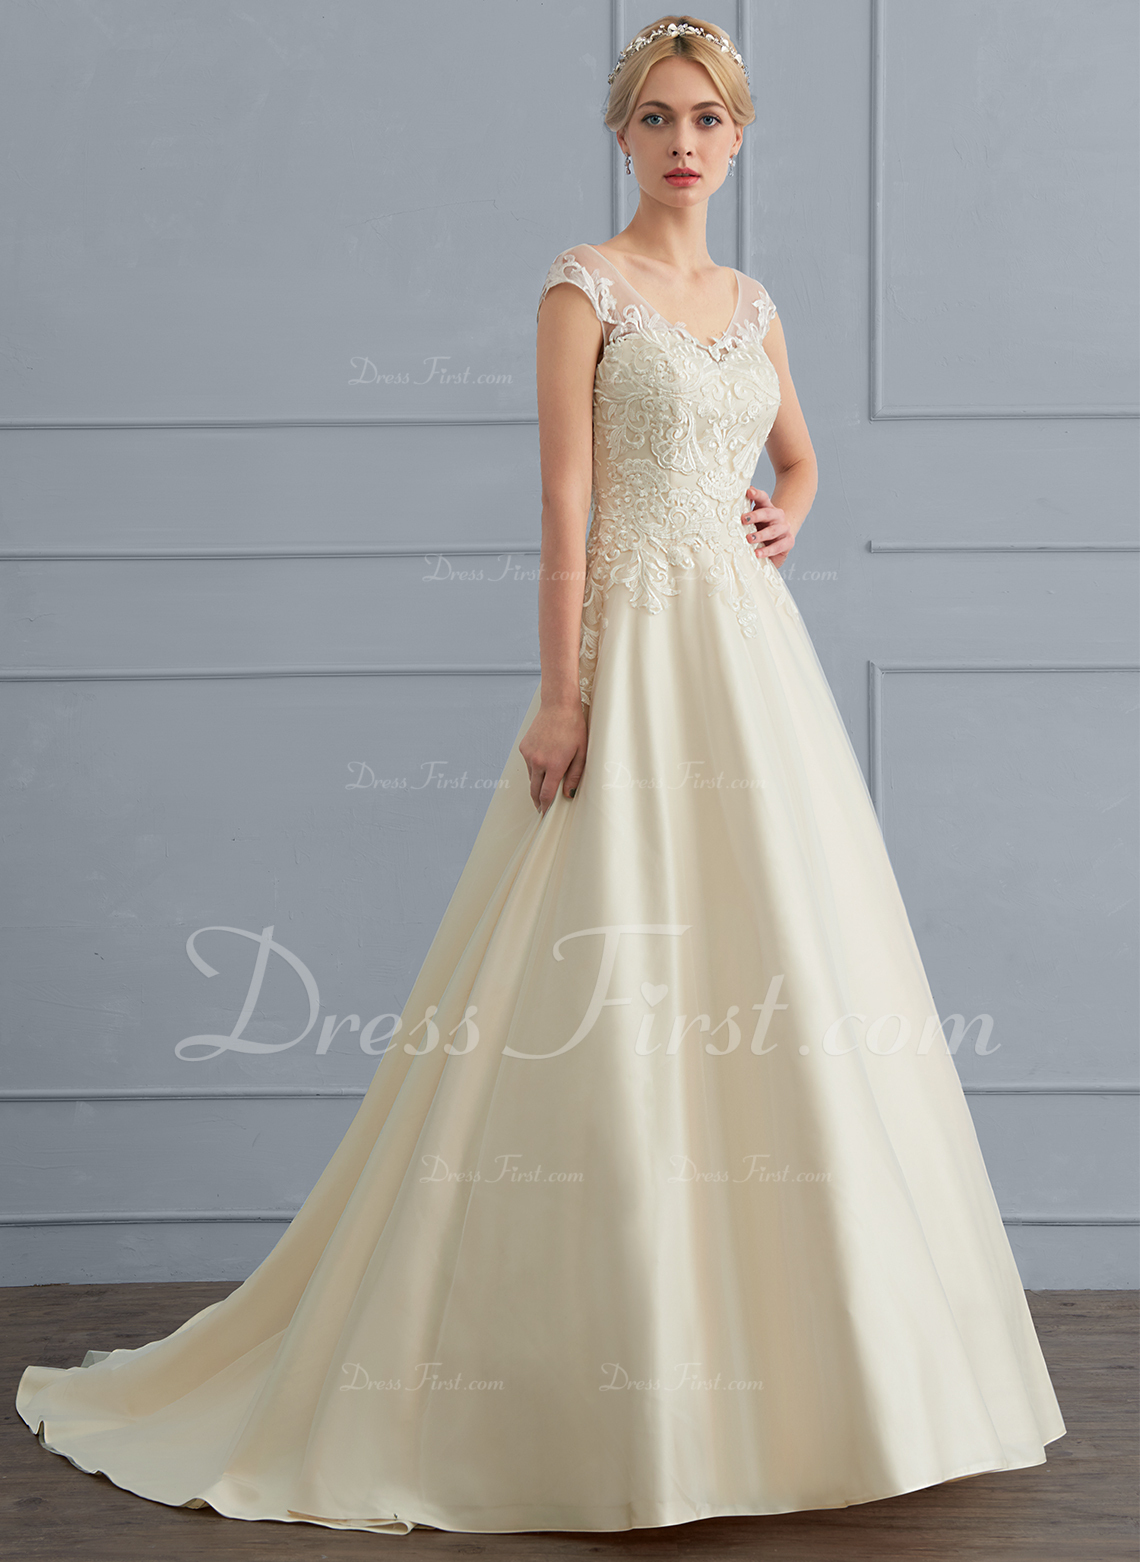 bc42cdb4671510 ... Loading Zoom · Ball Gown V Neck Sweep Train Tulle Wedding Dress 124276  ...